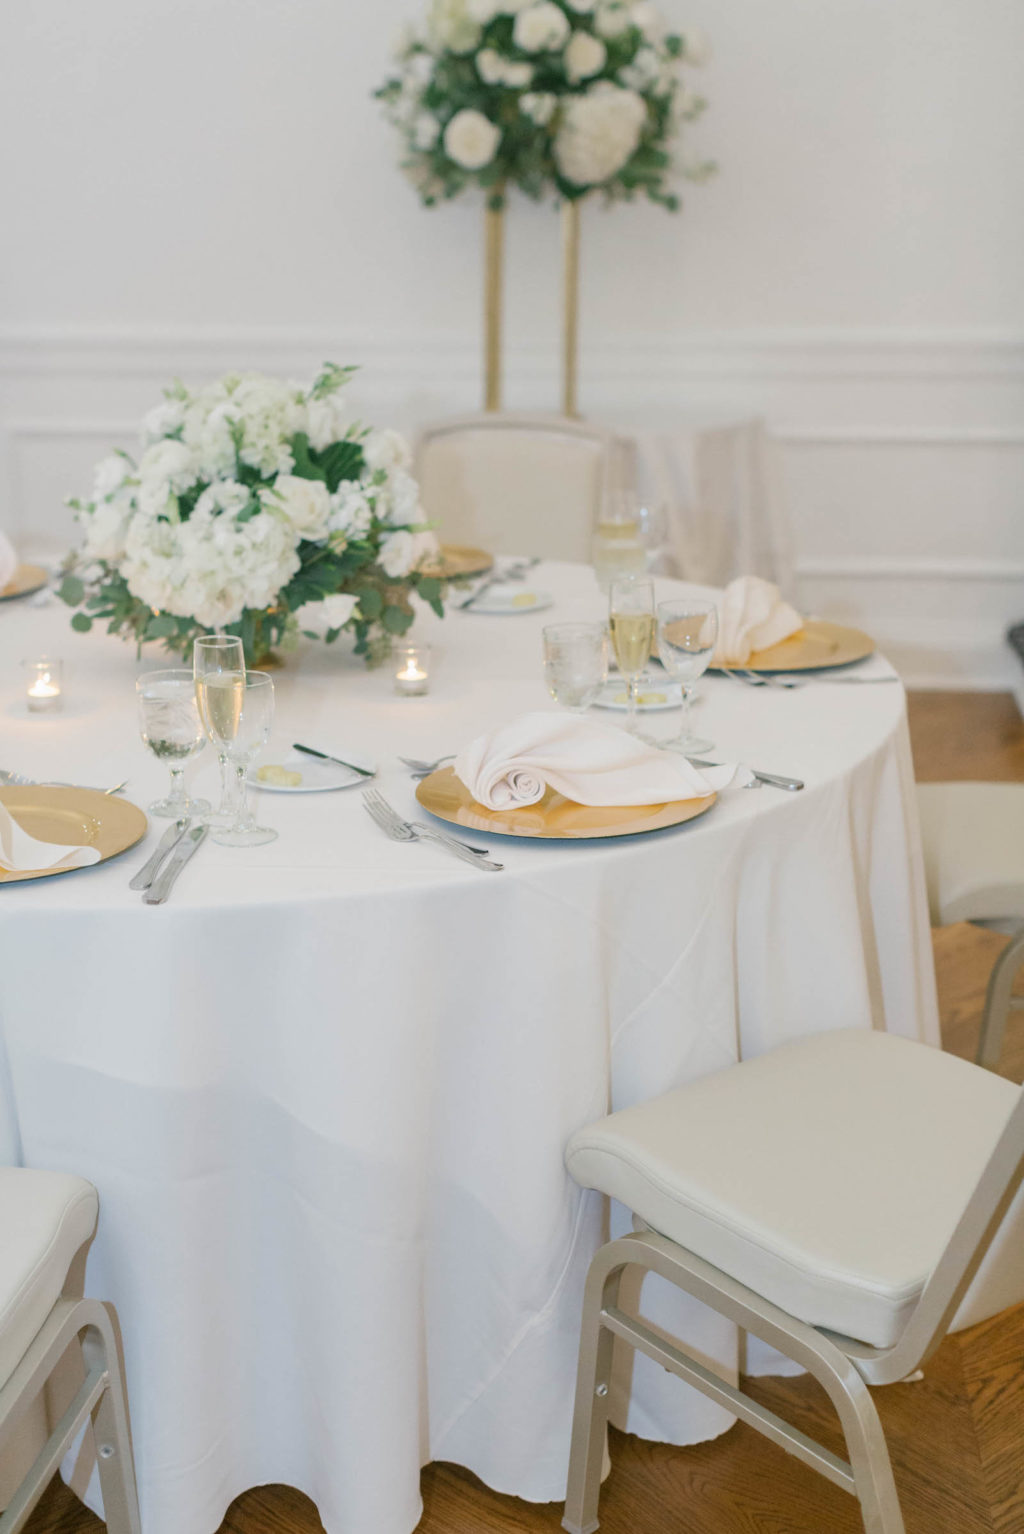 White Linen, Gold Chargers with White Napkins, White Rose and Greenery Centerpieces | Tampa Bay Wedding Florist FH Events